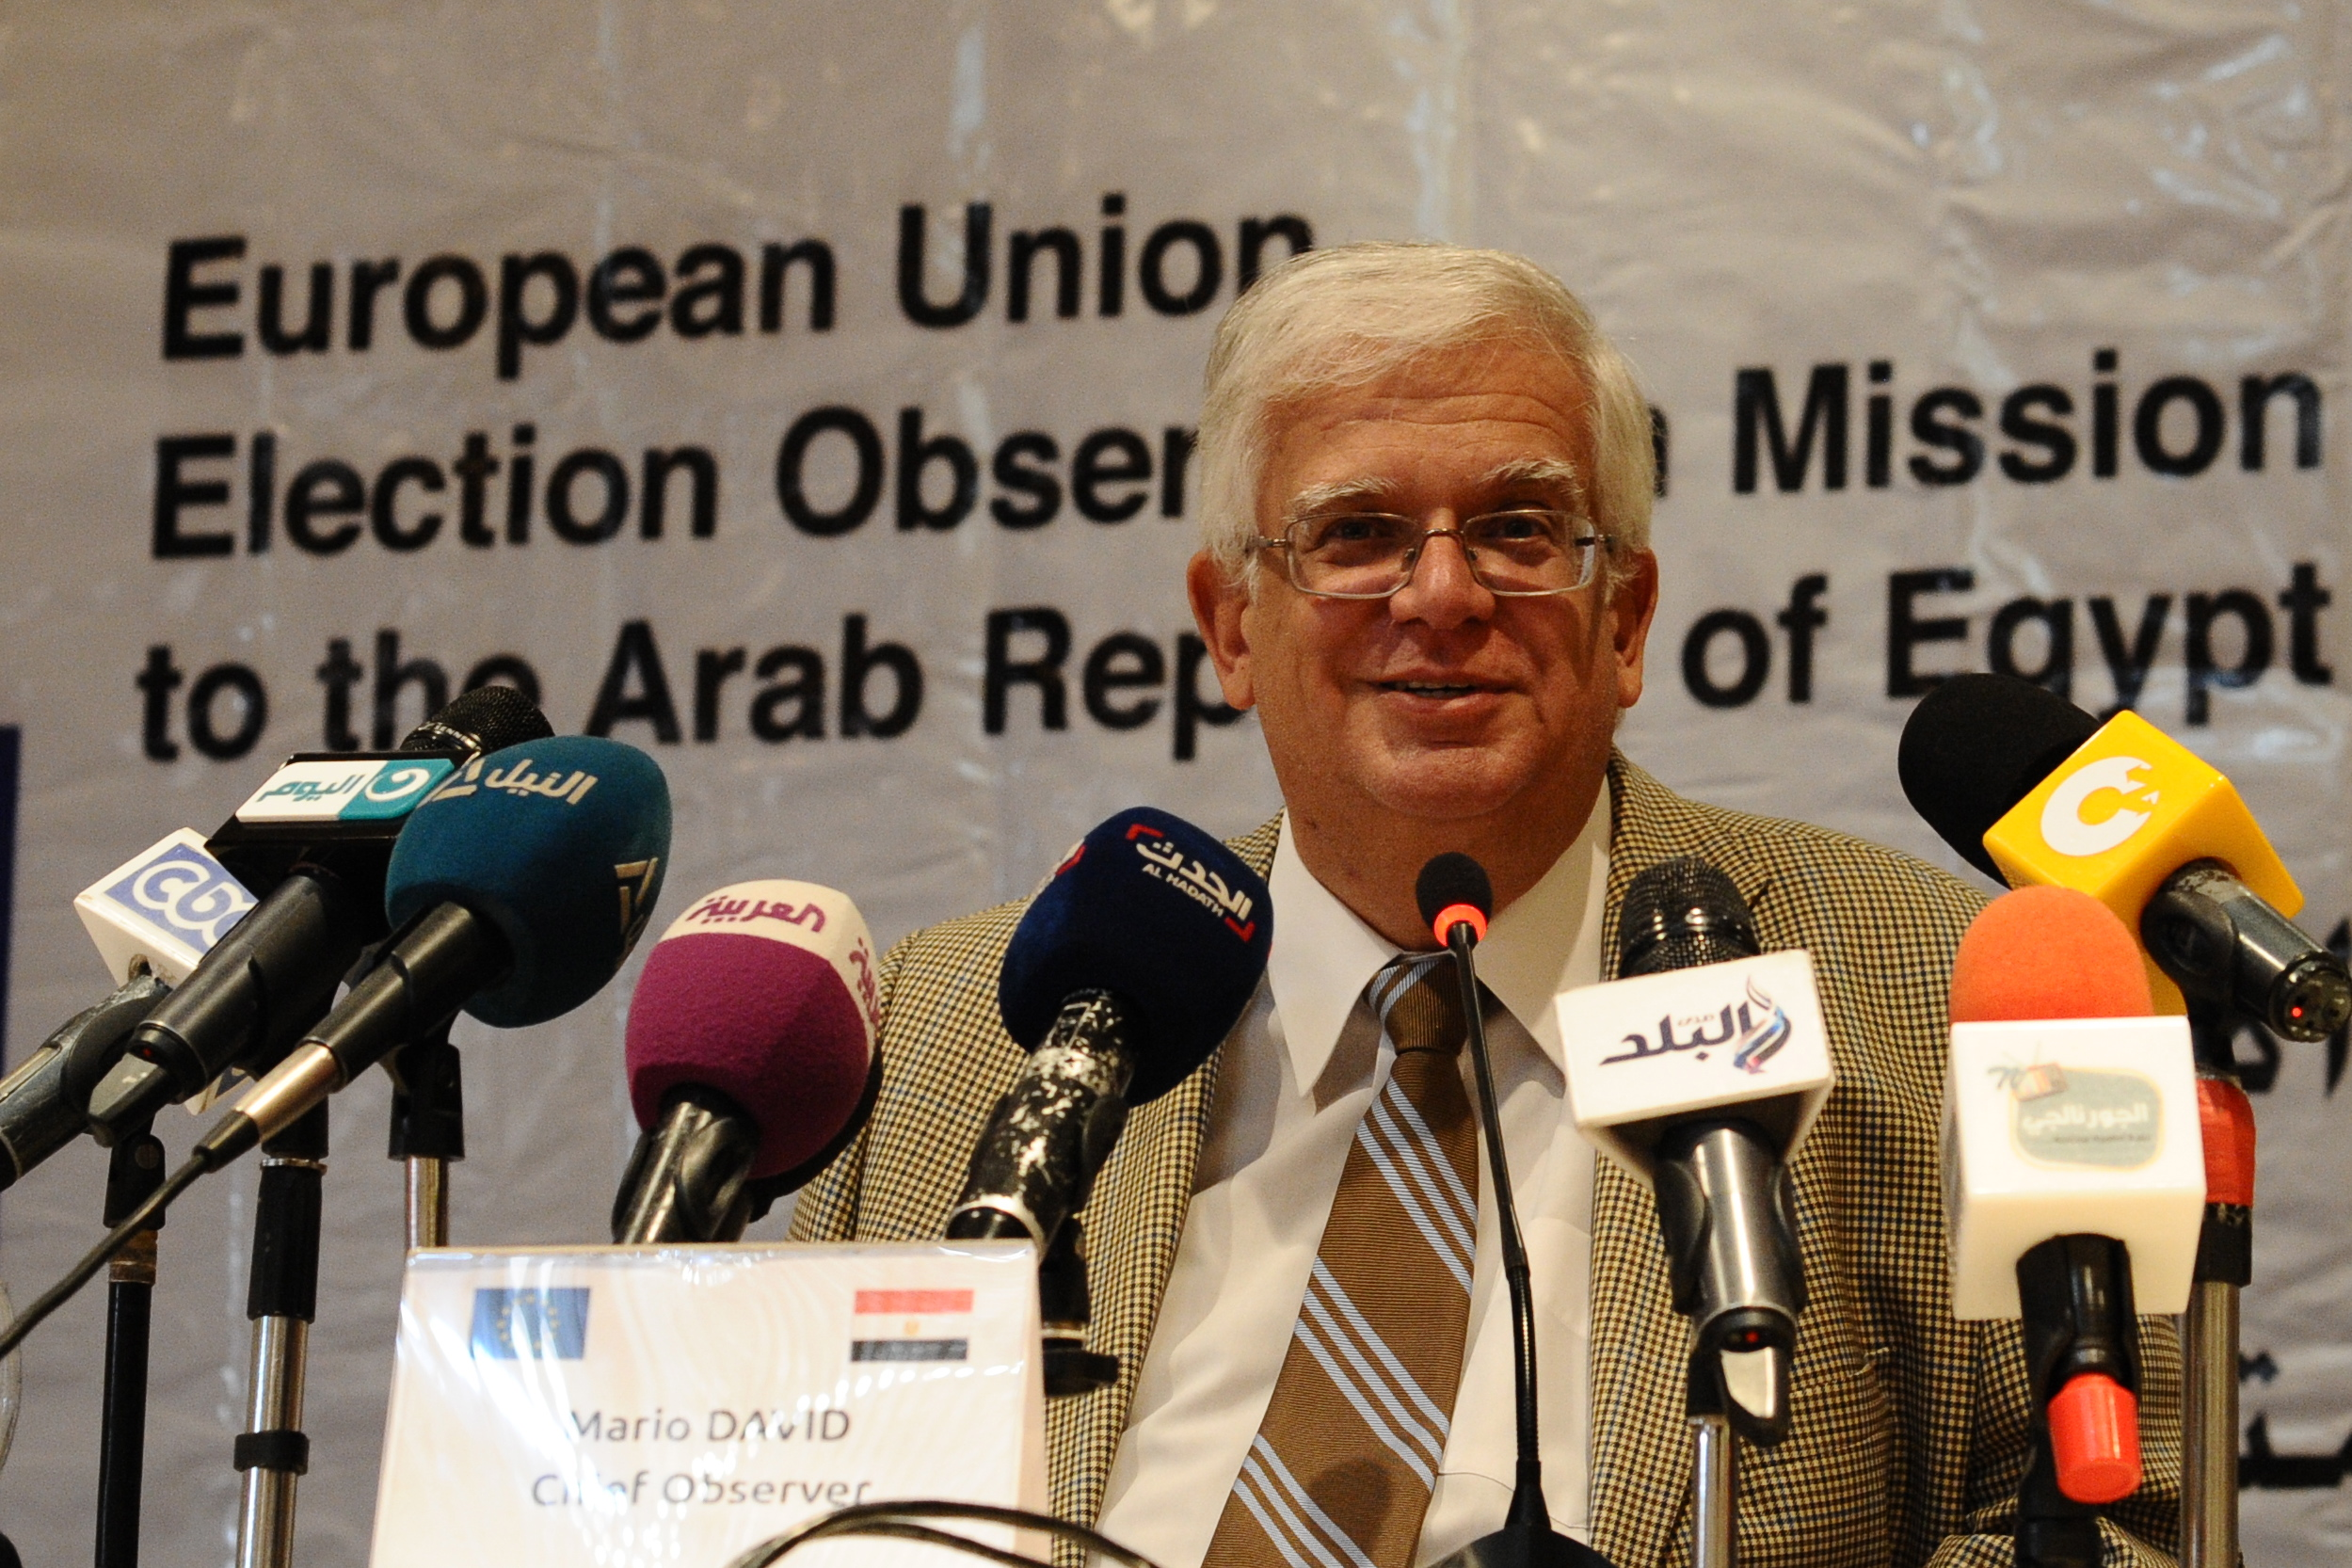 Chief Observer Mario David presenting the final report of the European Union Election Observation Mission at a press conference on Tuesday. (Photo by Ali Omar)